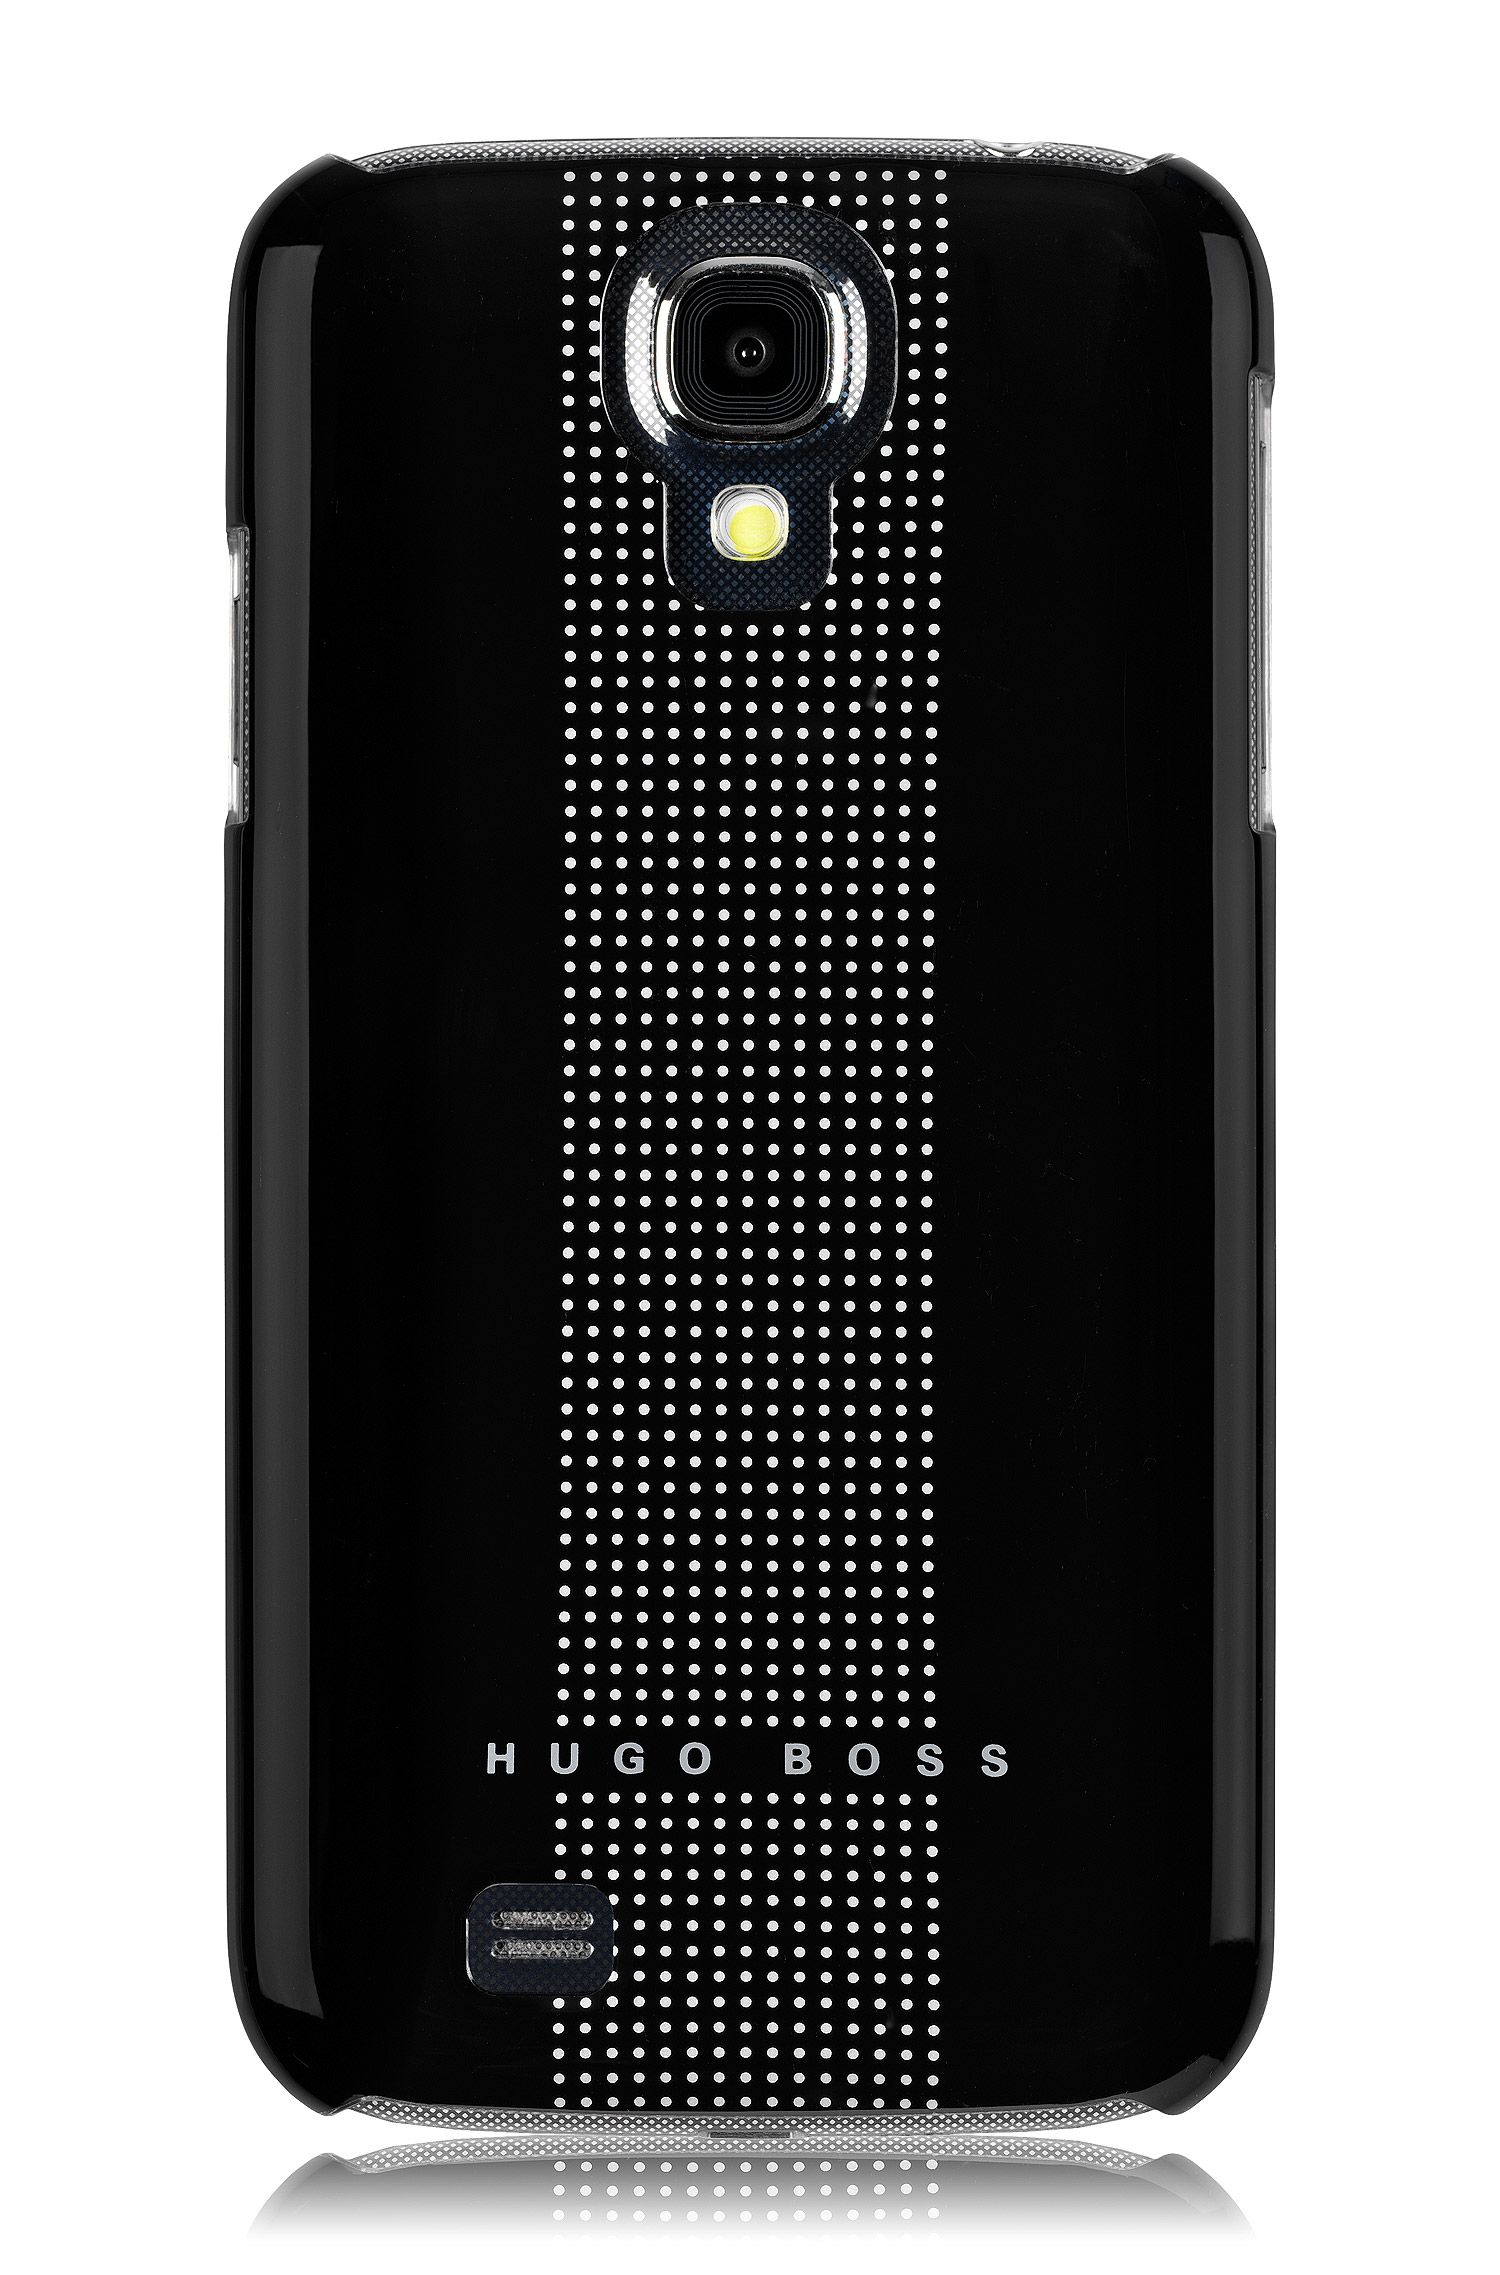 Coque rigide Samsung Galaxy S4, Dots black IV